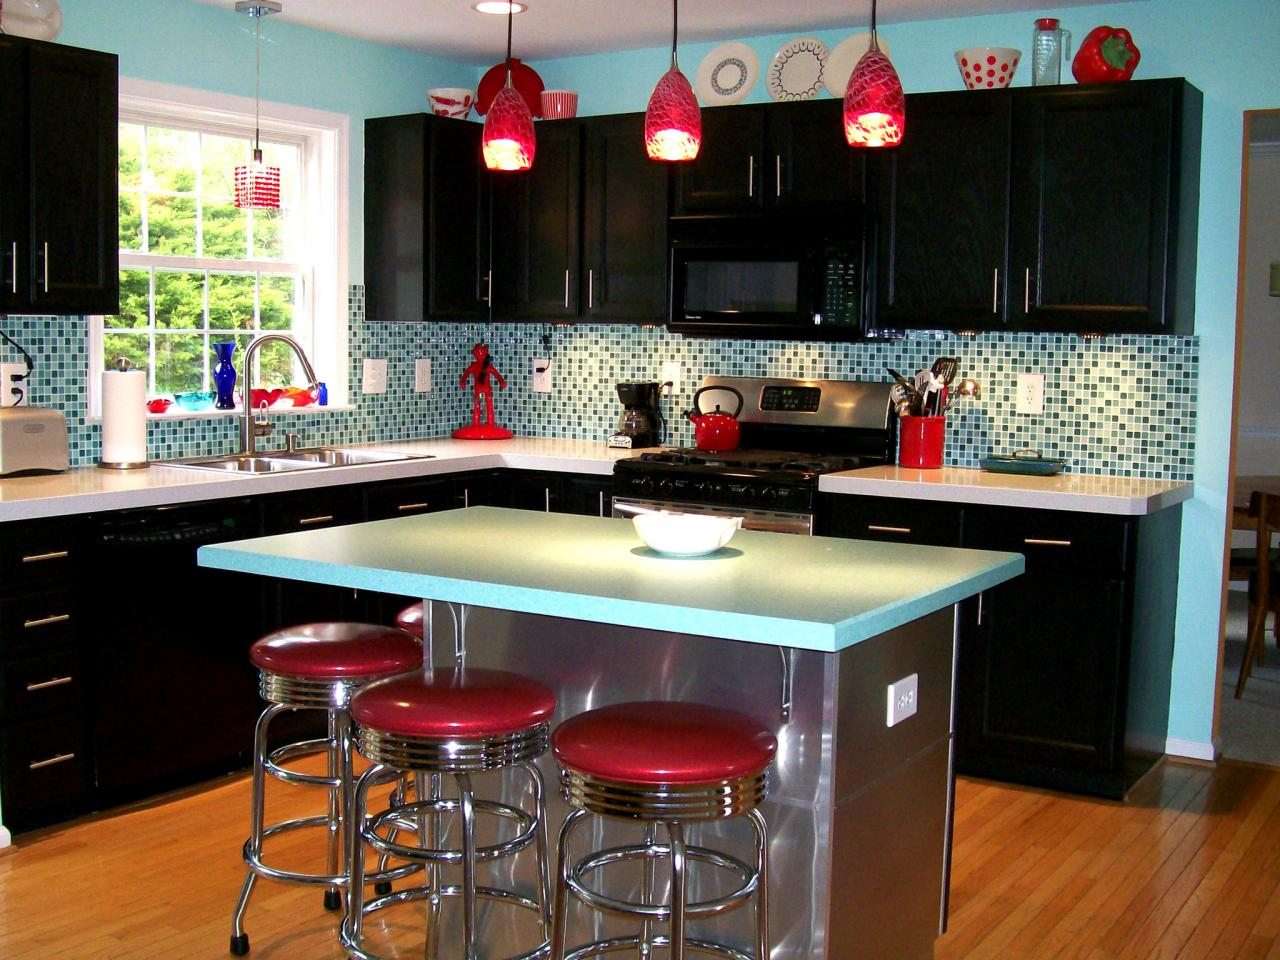 Formica Kitchen Countertops Pictures Ideas From HGTV HGTV